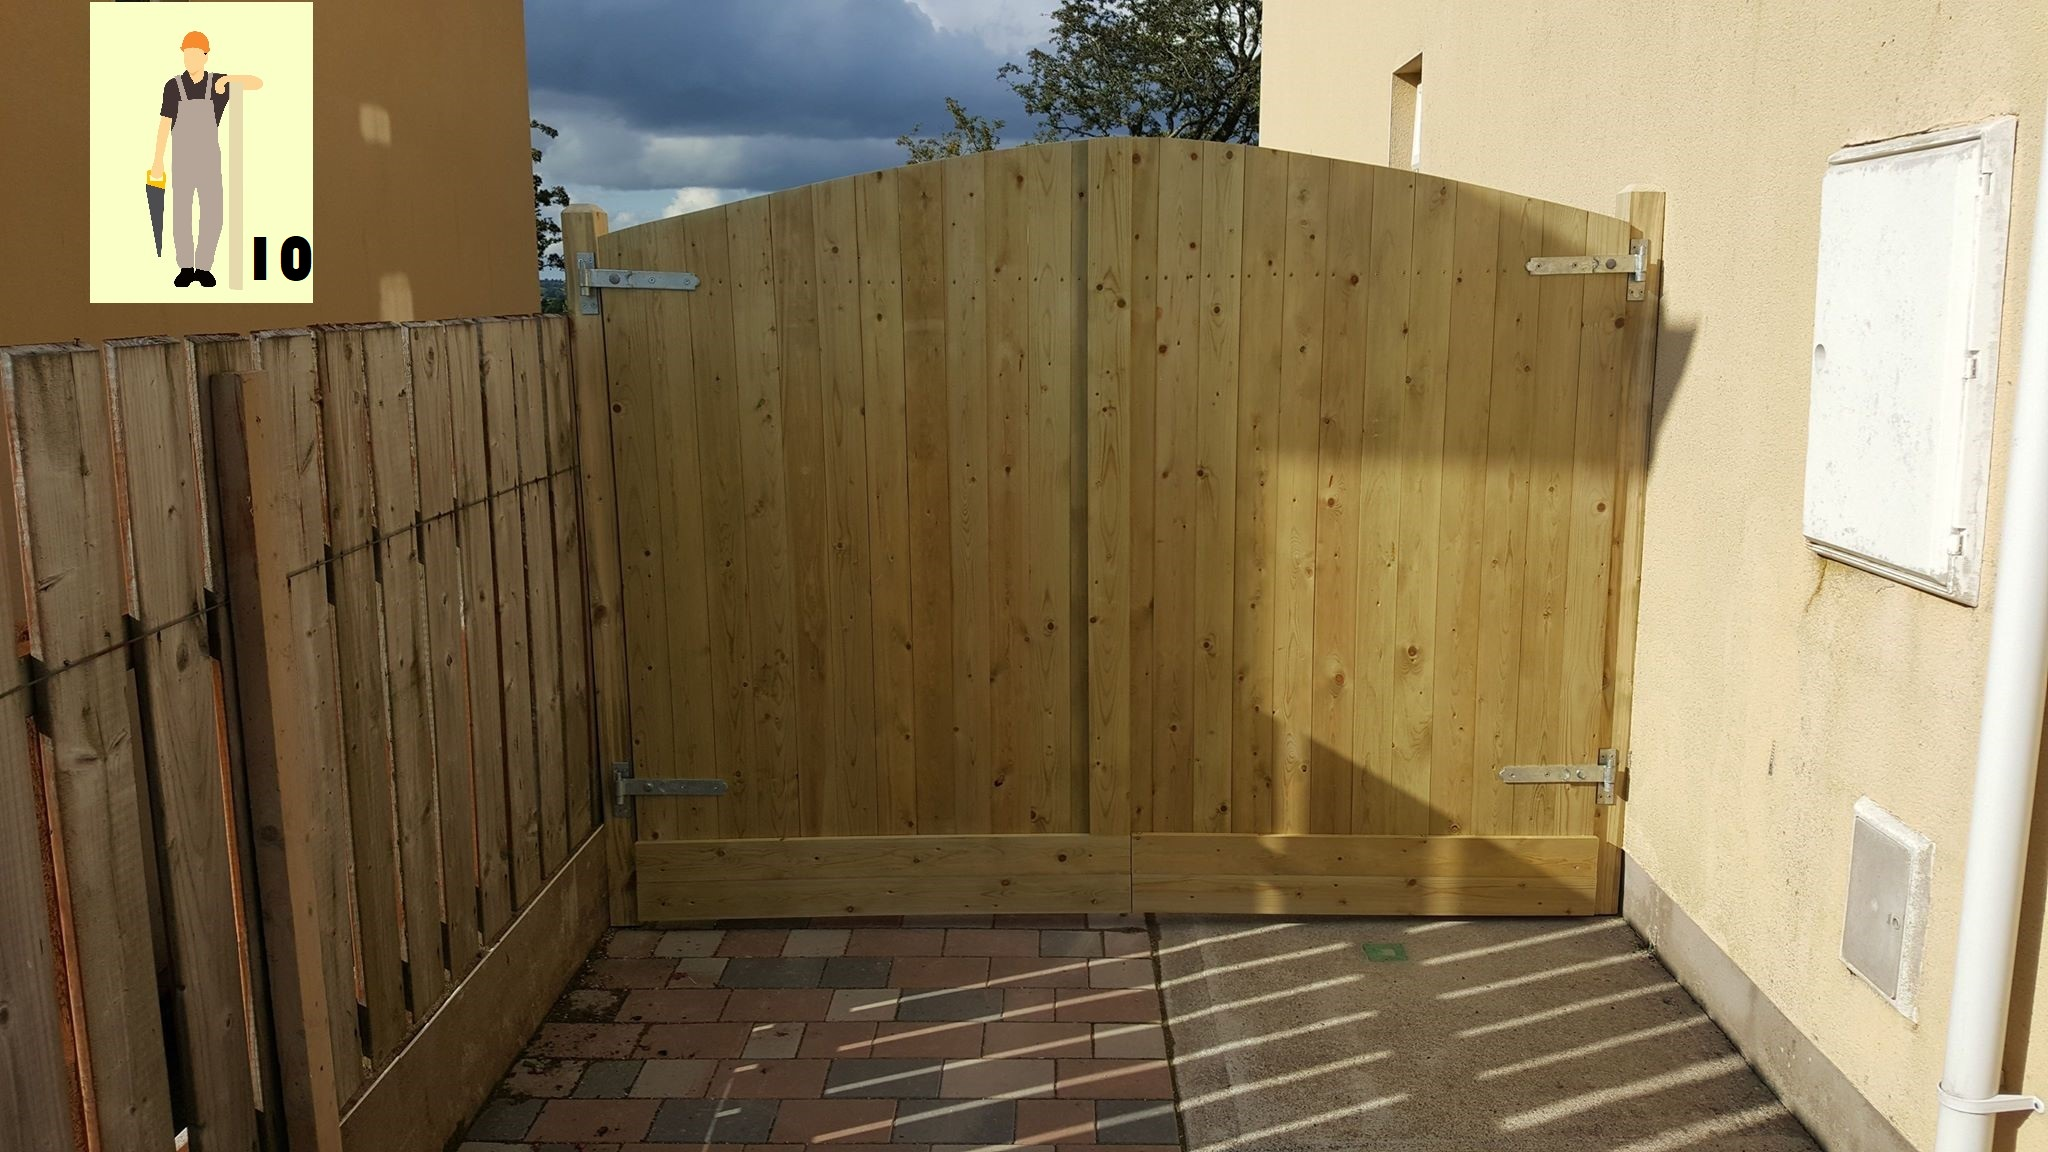 Gates & Fencing - Handcrafted Gates in Hard or Soft Wood